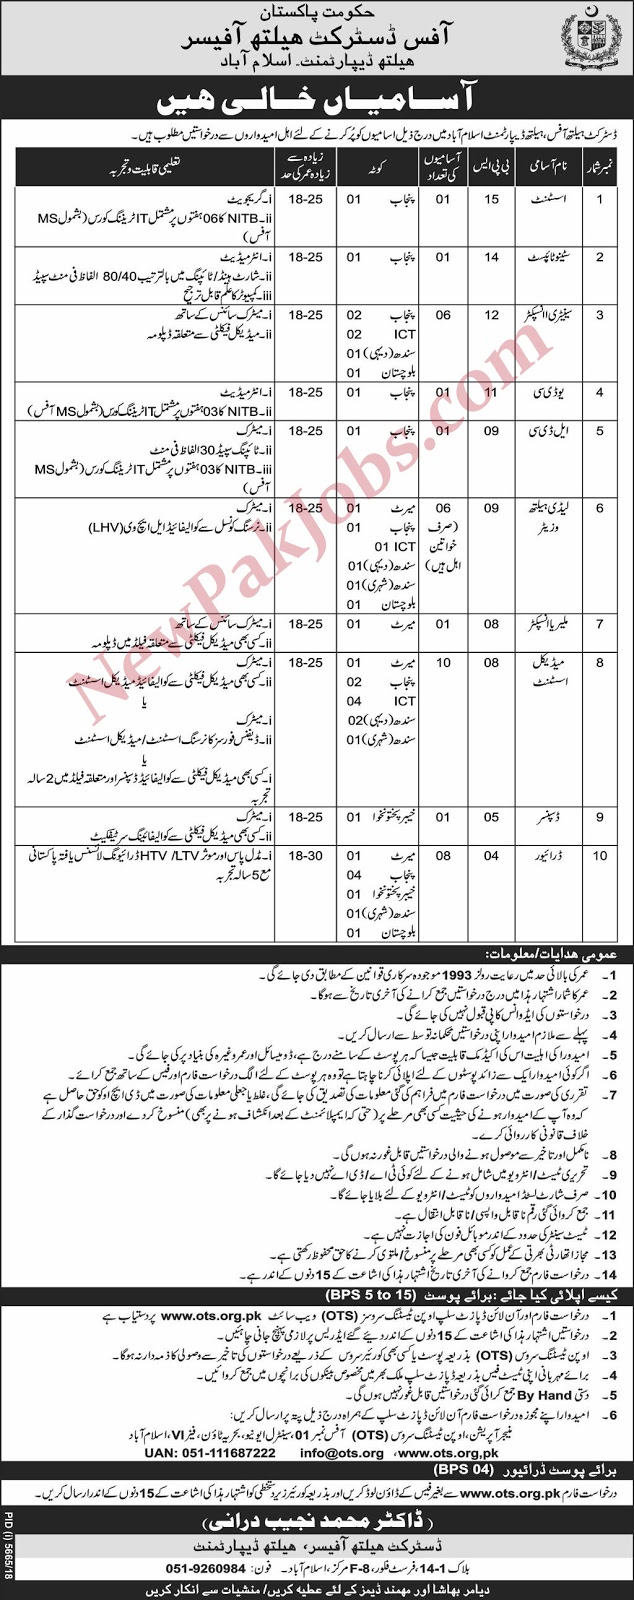 Office District Health Office Islamabad OTS Jobs 02 June 2019